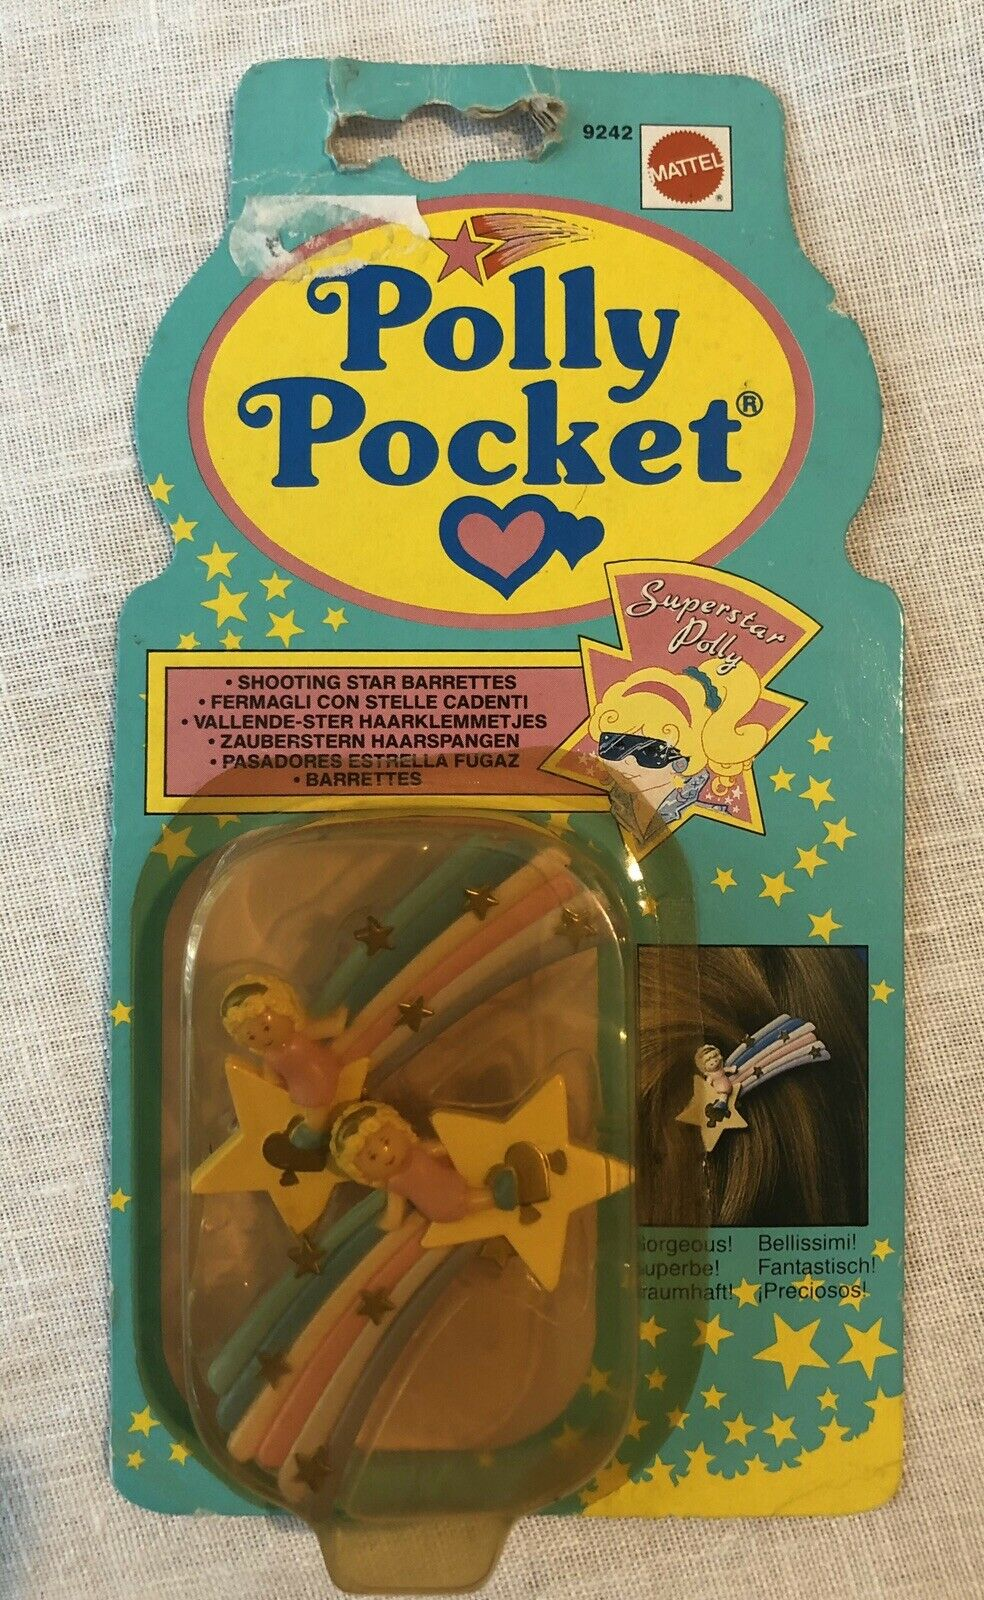 Polly Pocket Shooting Star Barrettes 1990 New In Box